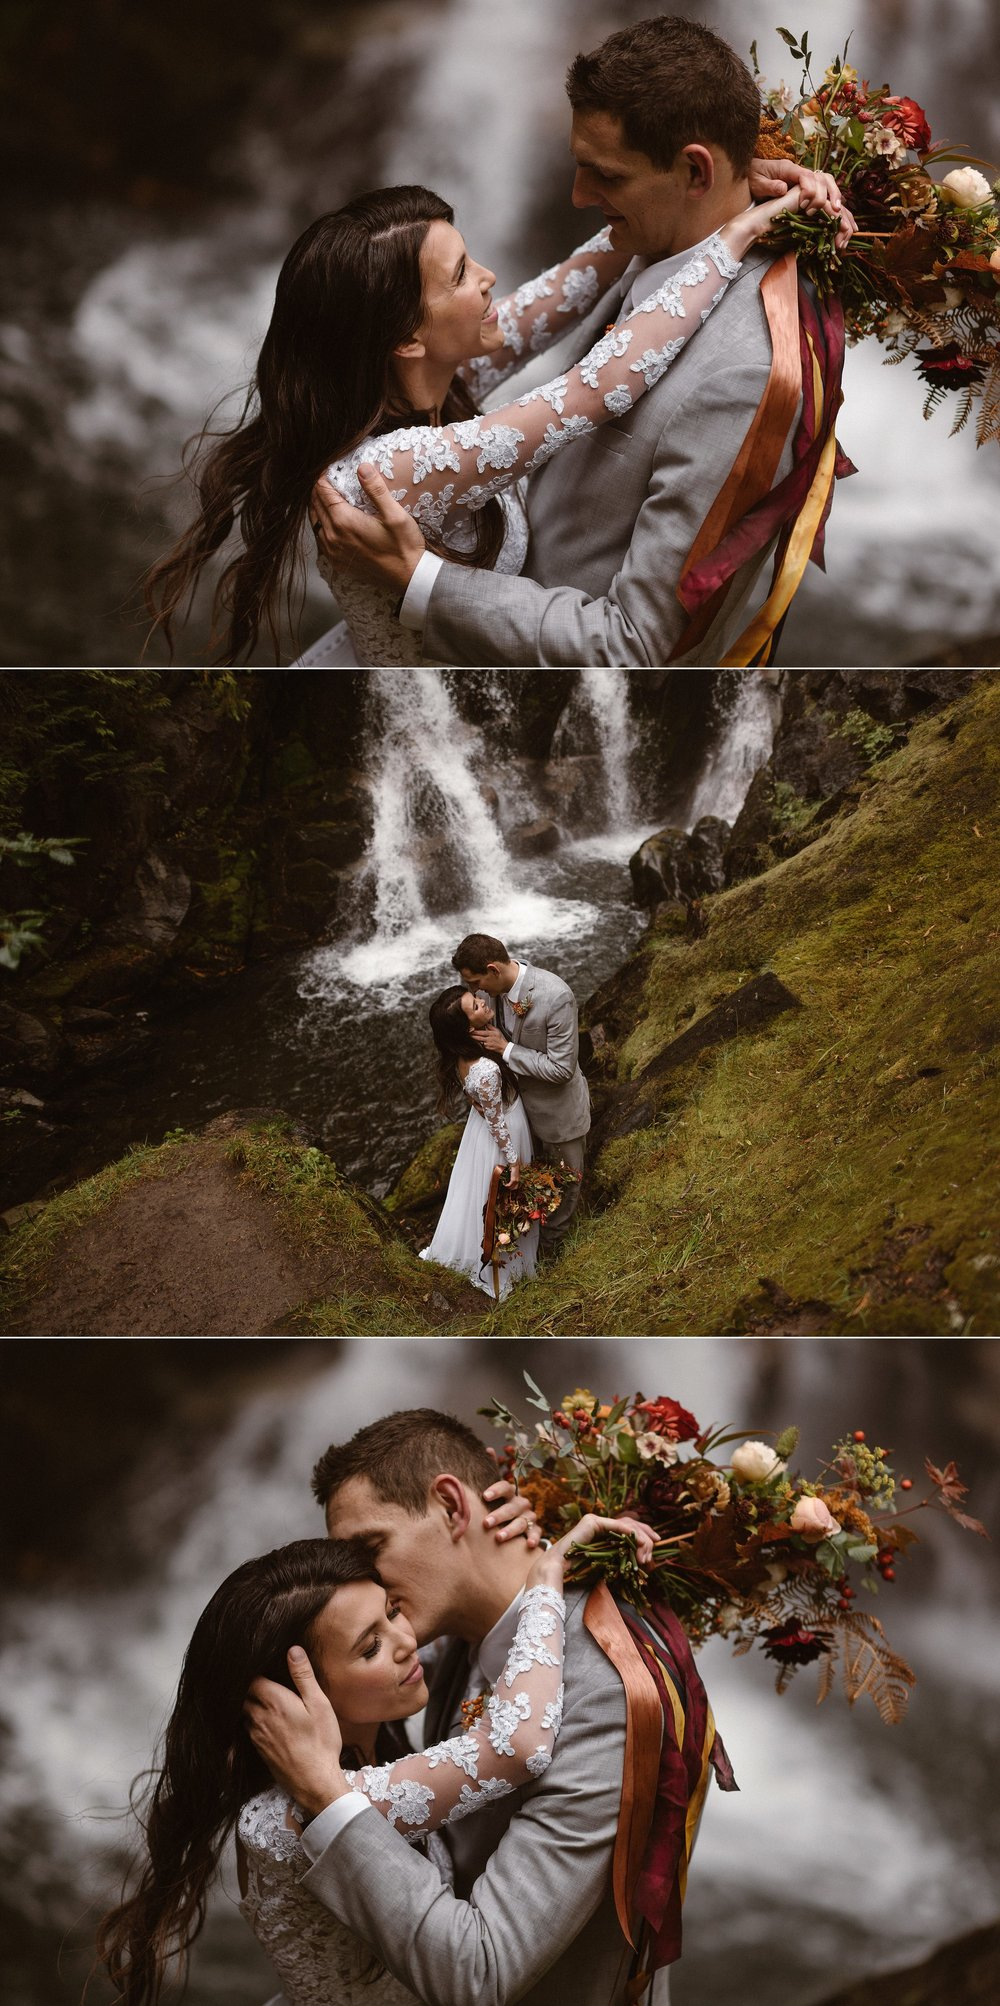 The wandered through the trees towards the sound of water when they found a little waterfall jutting out through the mountainside. Mount Rainier National Park is a stunning location for an intimate wedding or elopement for the adventurous types who wish to say their vows in nature. Photos of this romantic wooded elopement by traveling wedding photographer Maddie Mae.